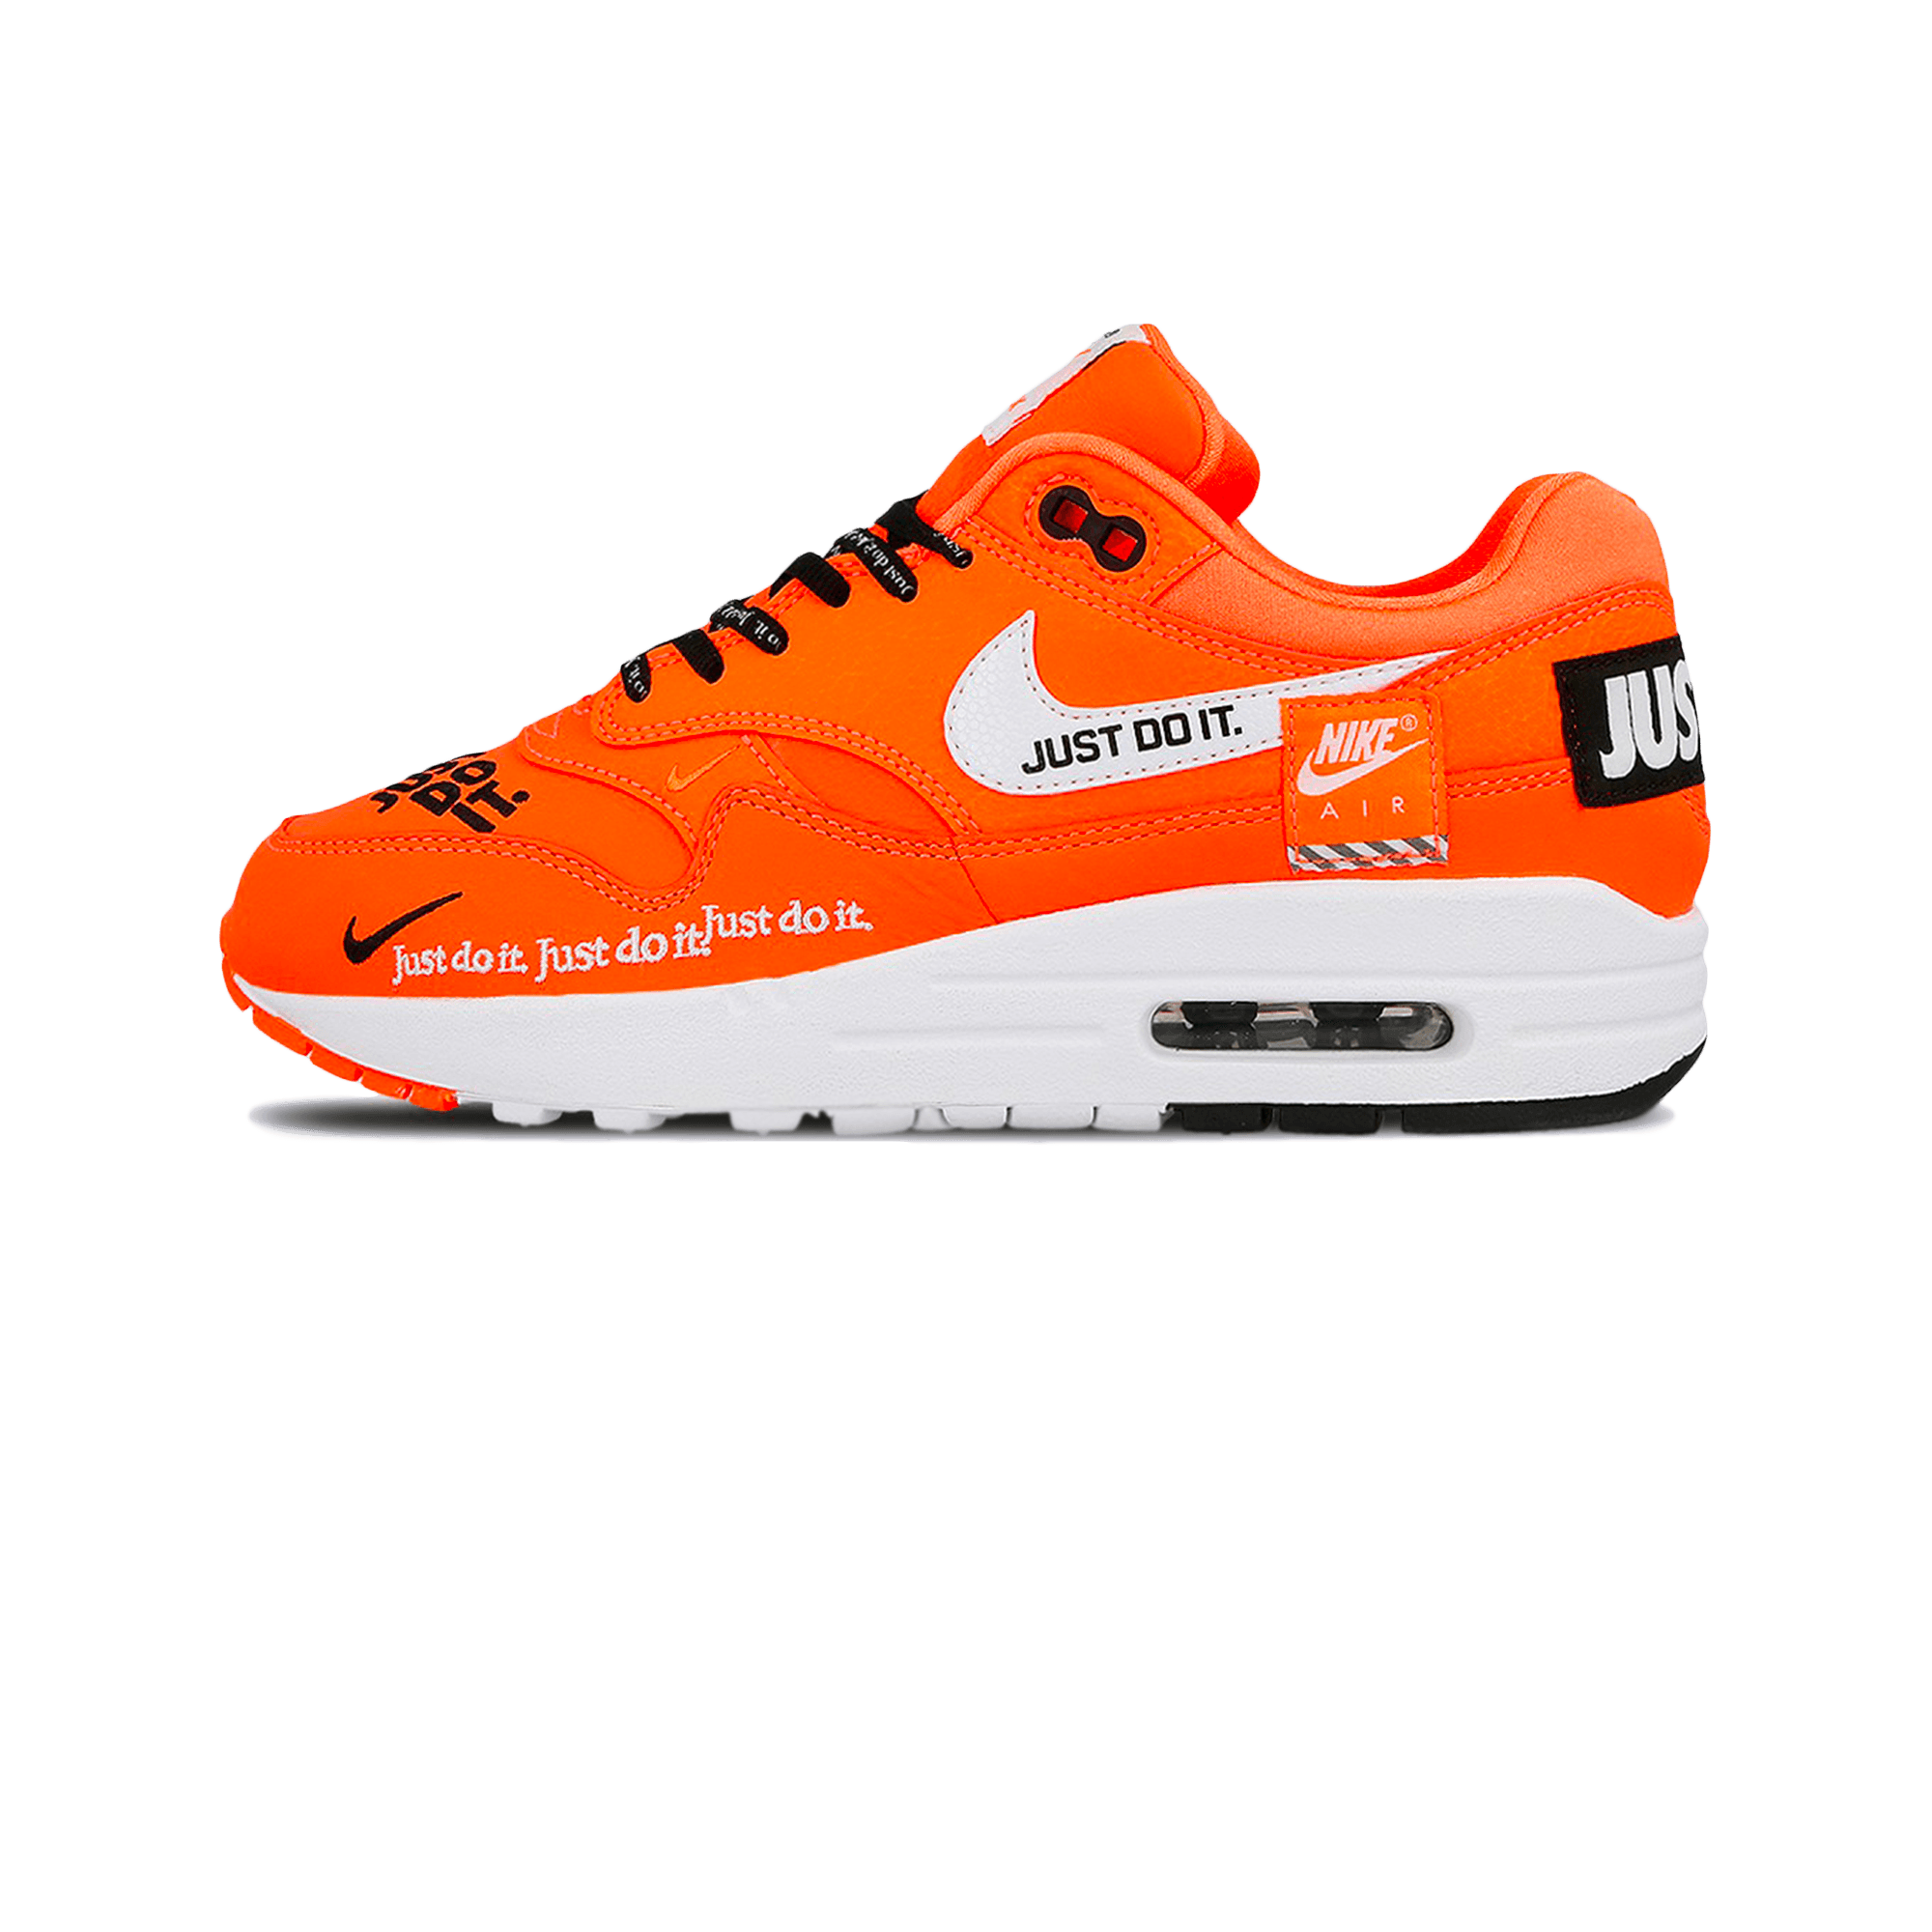 Air Max 1 Lux Just Do It W total orange / white / black